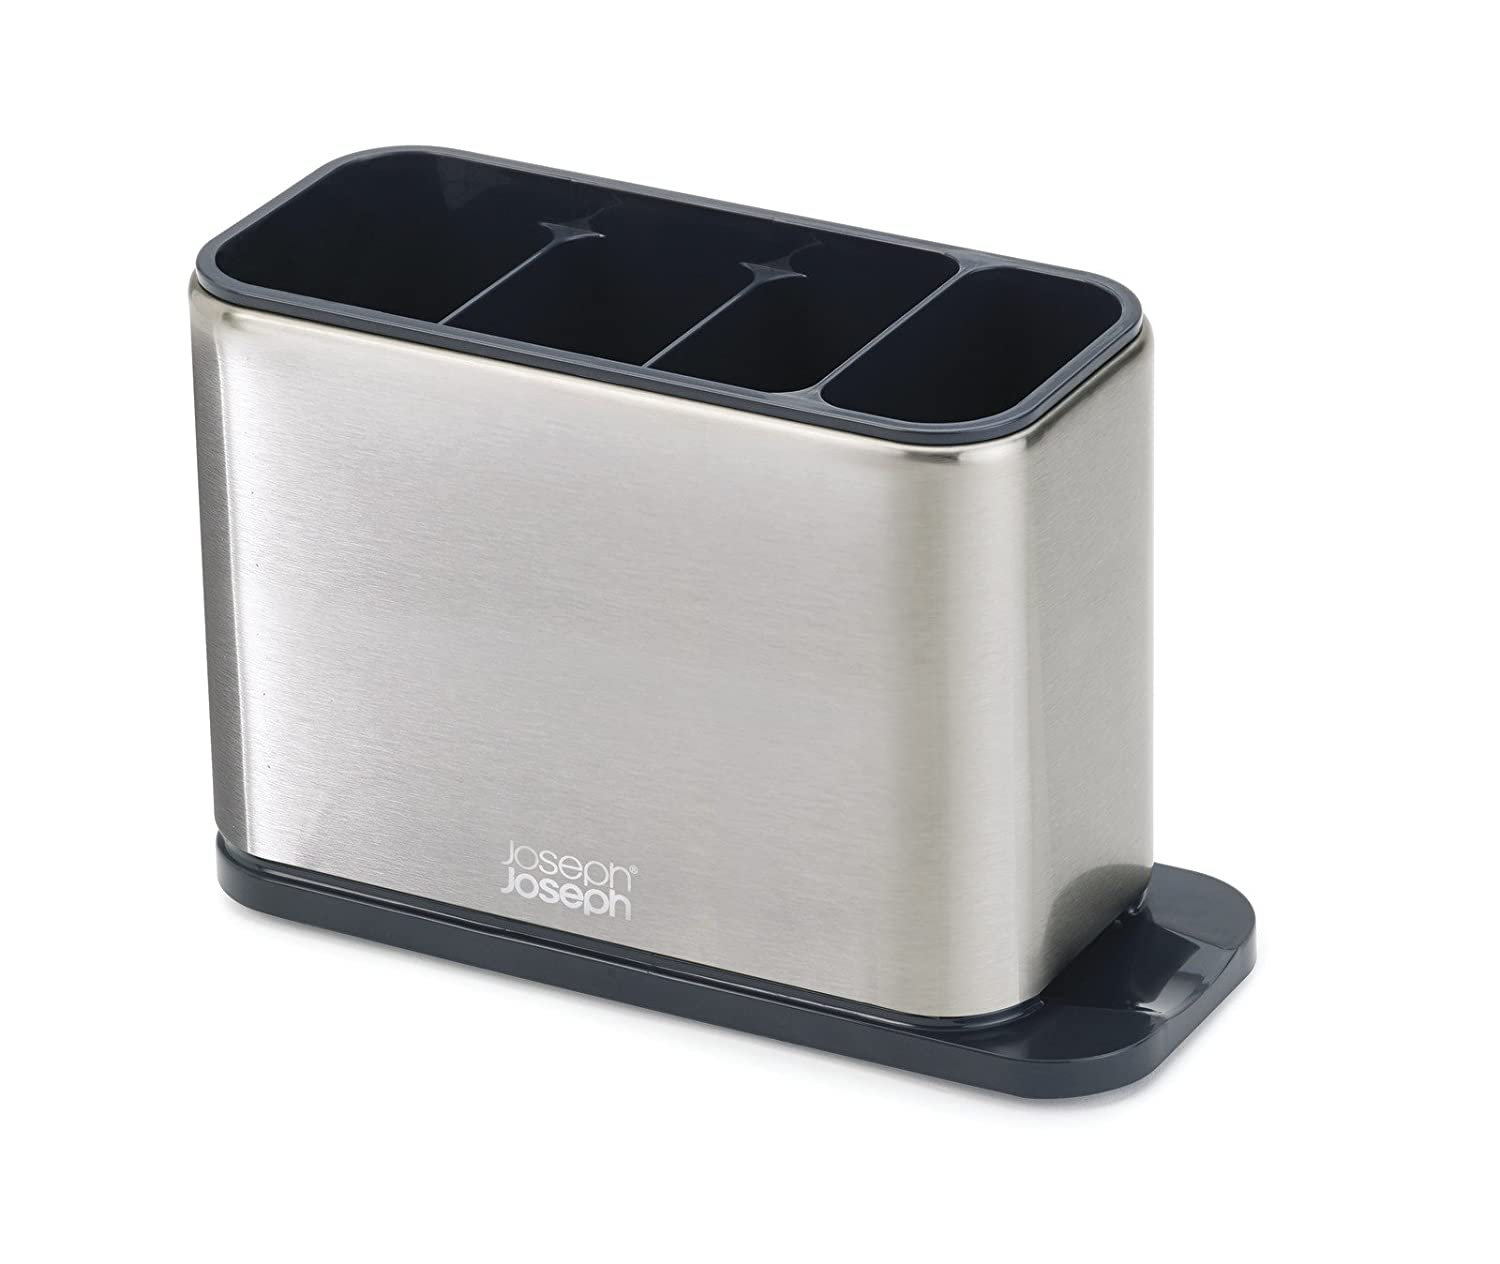 Joseph Joseph Surface Stainless-Steel Cutlery Drainer - Silver 85132